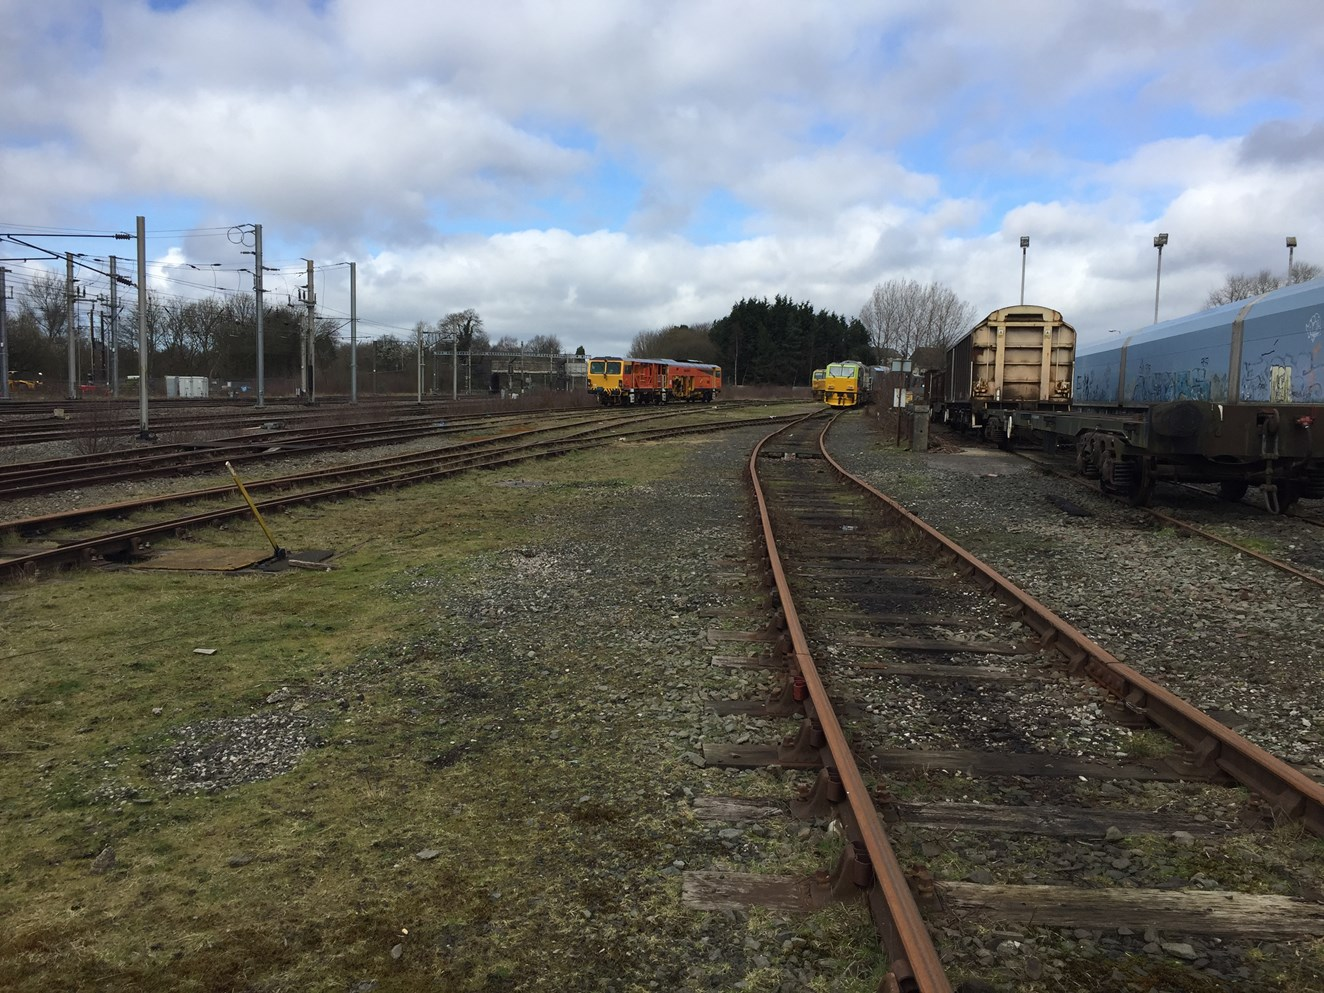 New 45m train depot planned for Wigan